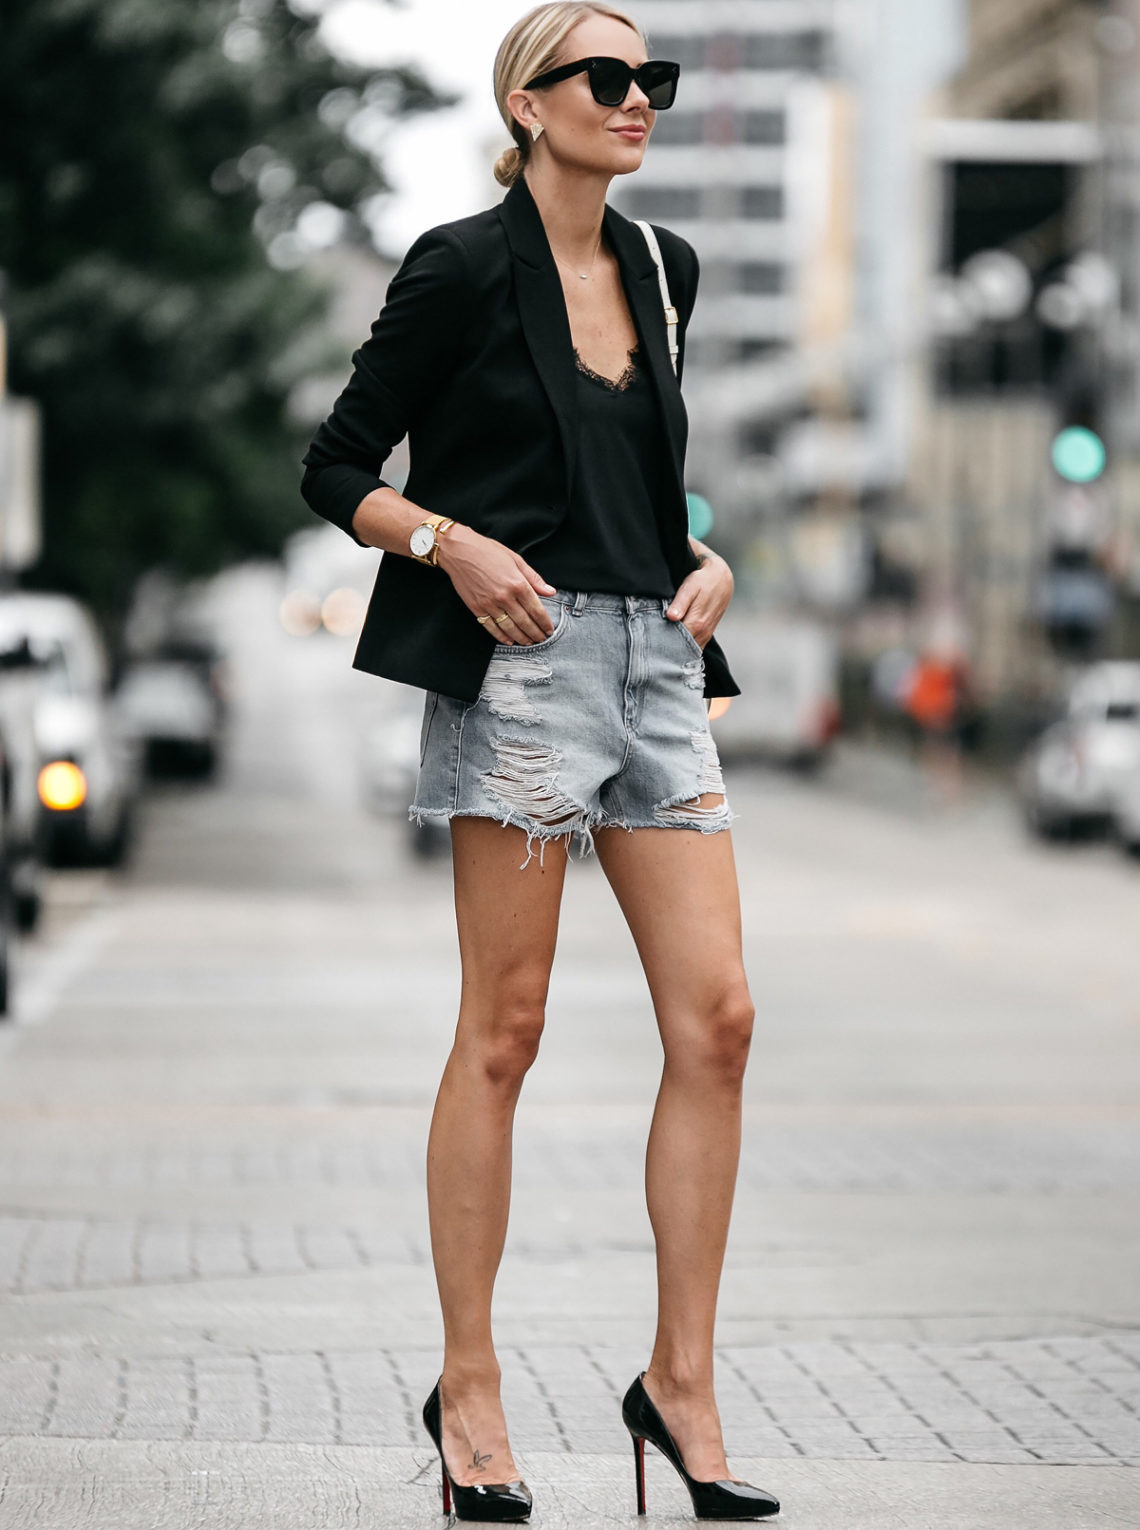 Blonde Woman Wearing Nordstrom Black Blazer Topshop Denim Cutoff Shorts Outfit Christian Louboutin Black Pumps Street Style Dallas Blogger Fashion Blogger